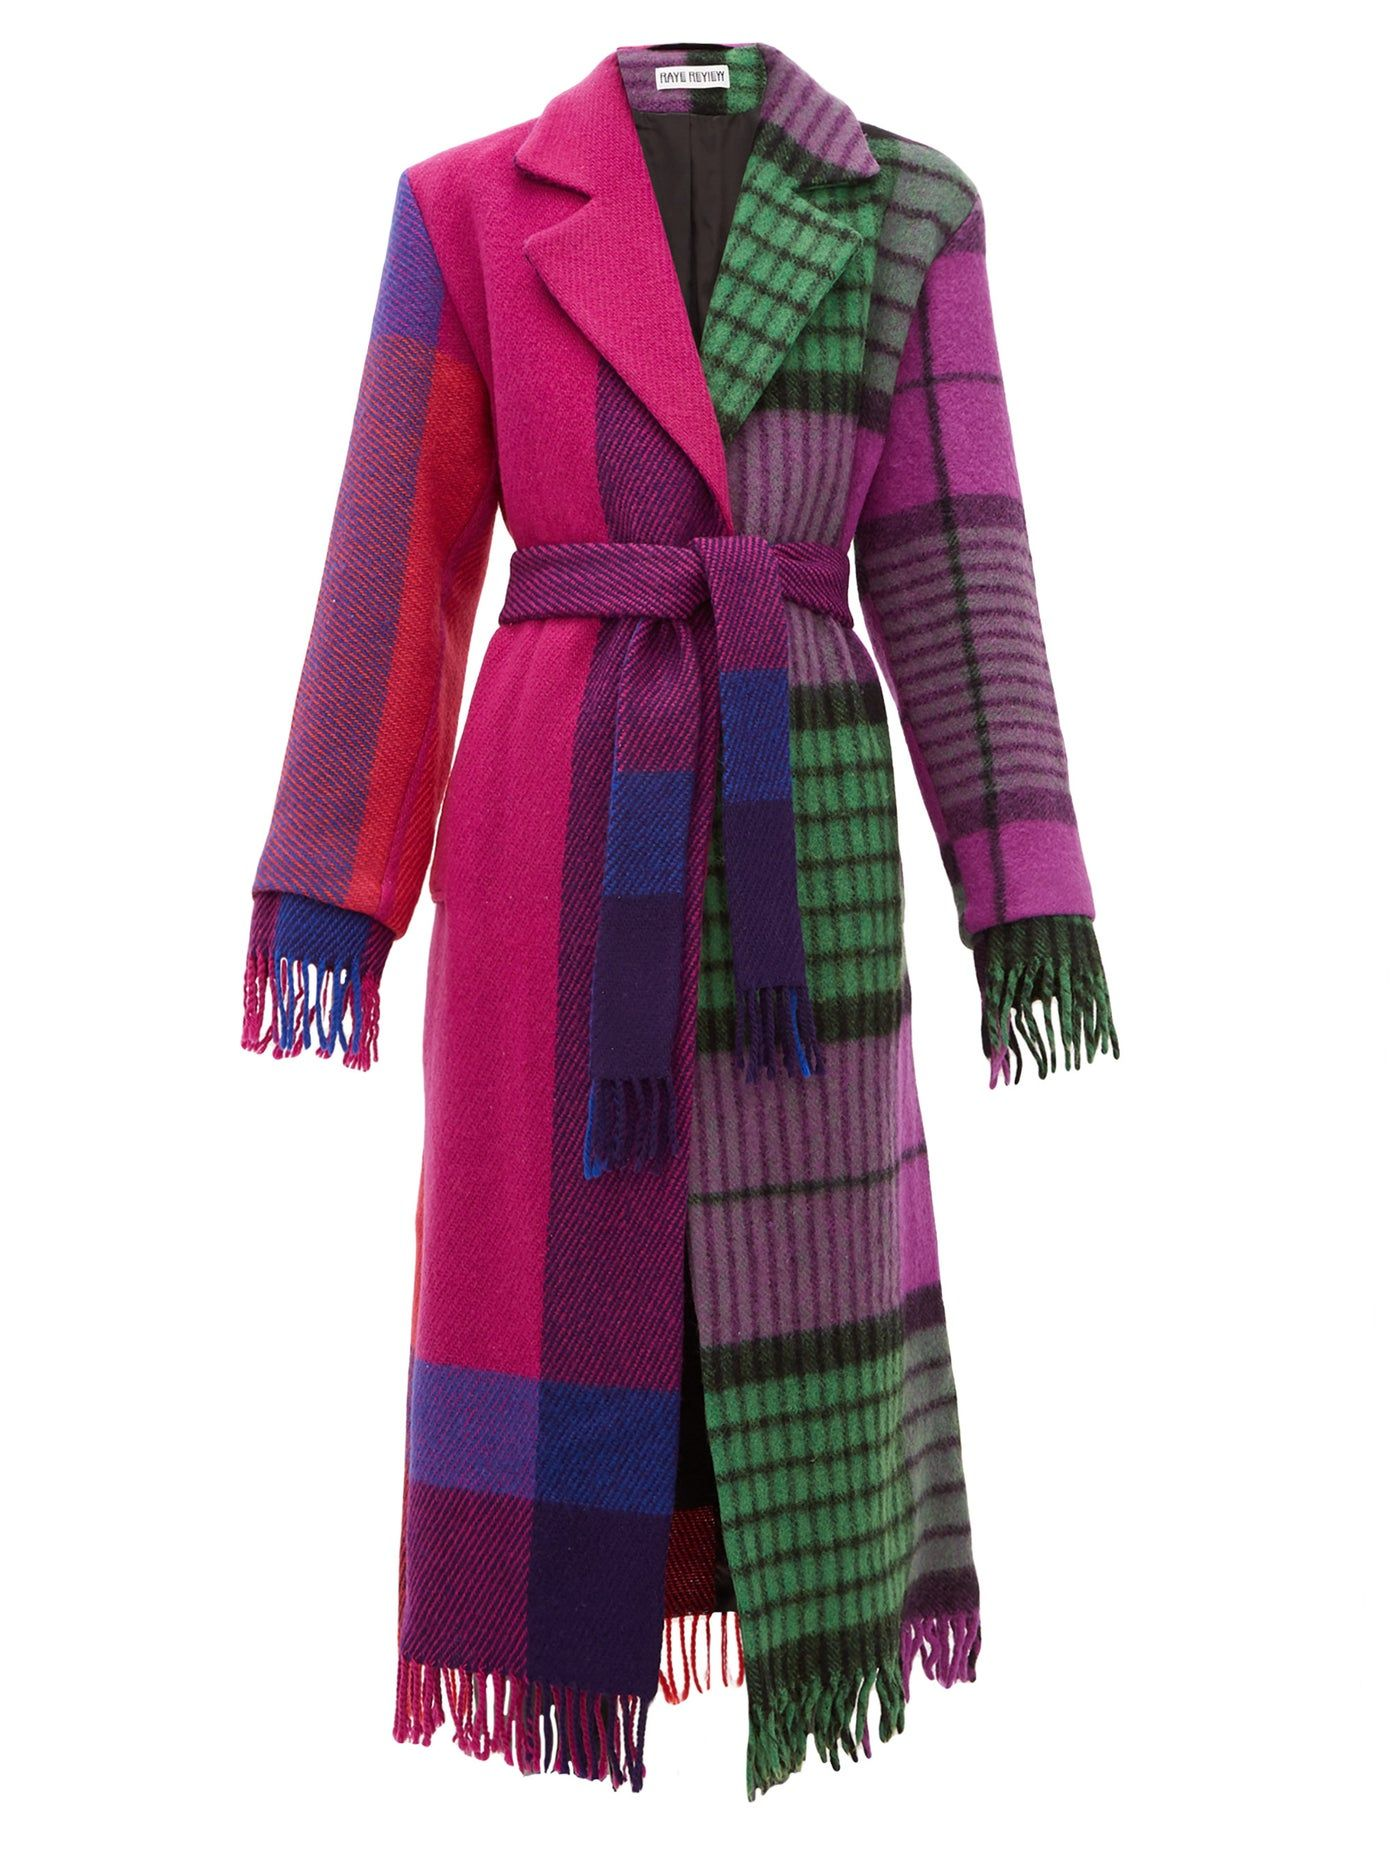 Rave-Review-Lola-single-breasted-upcycled-blanket-wool-coat-multicolored